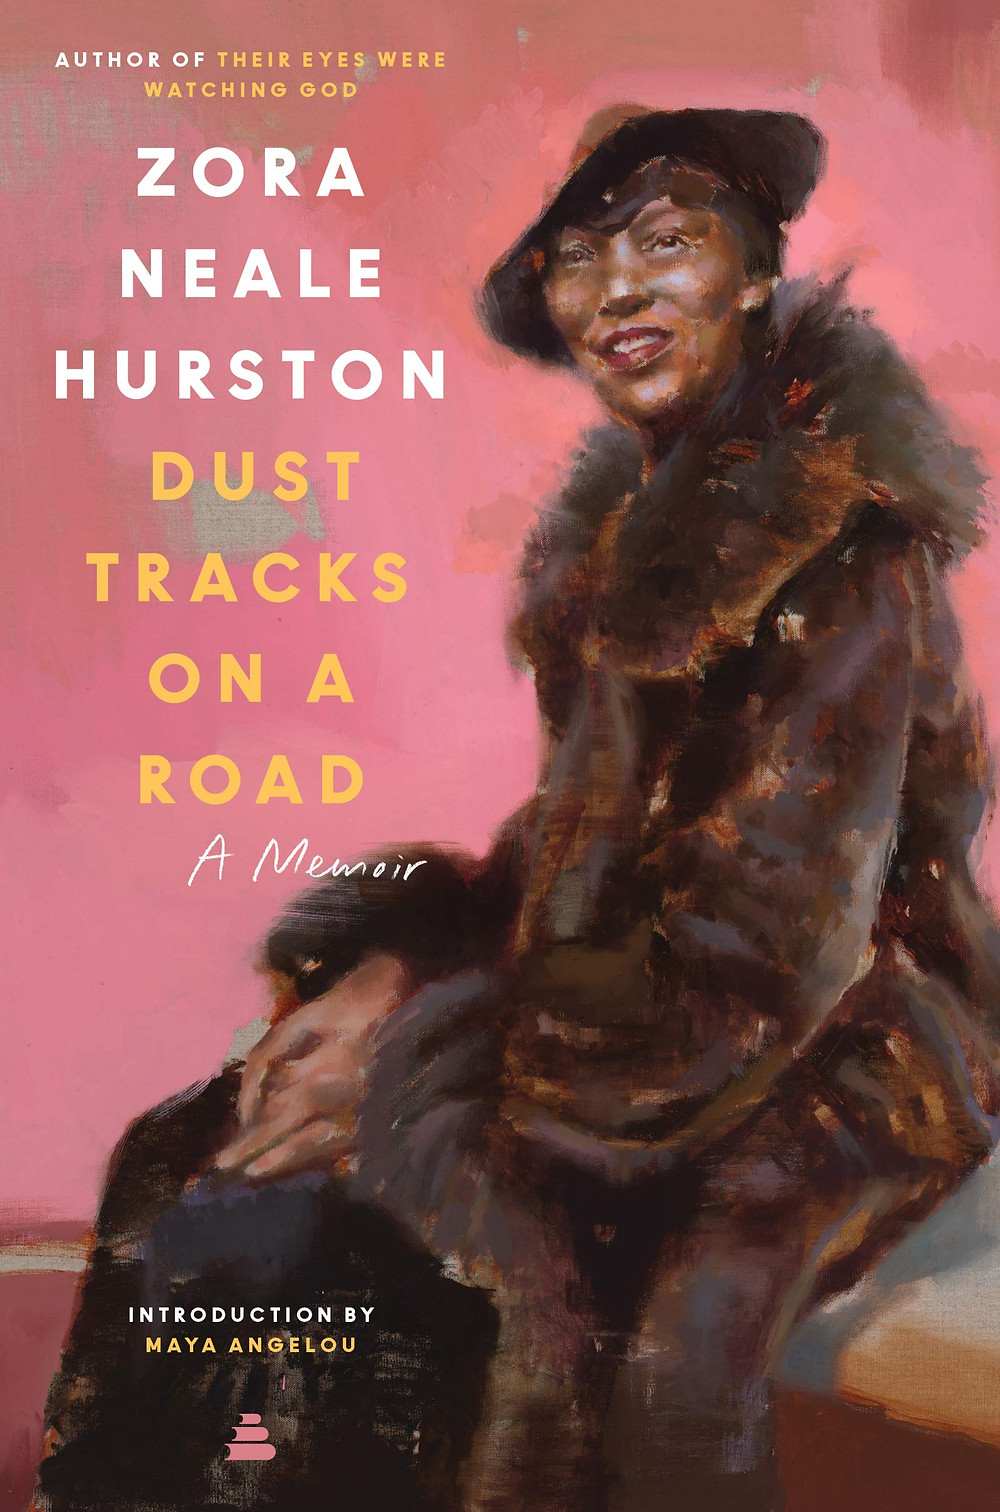 Book cover of Zora Neale Hurston's Dust Tracks on a Road